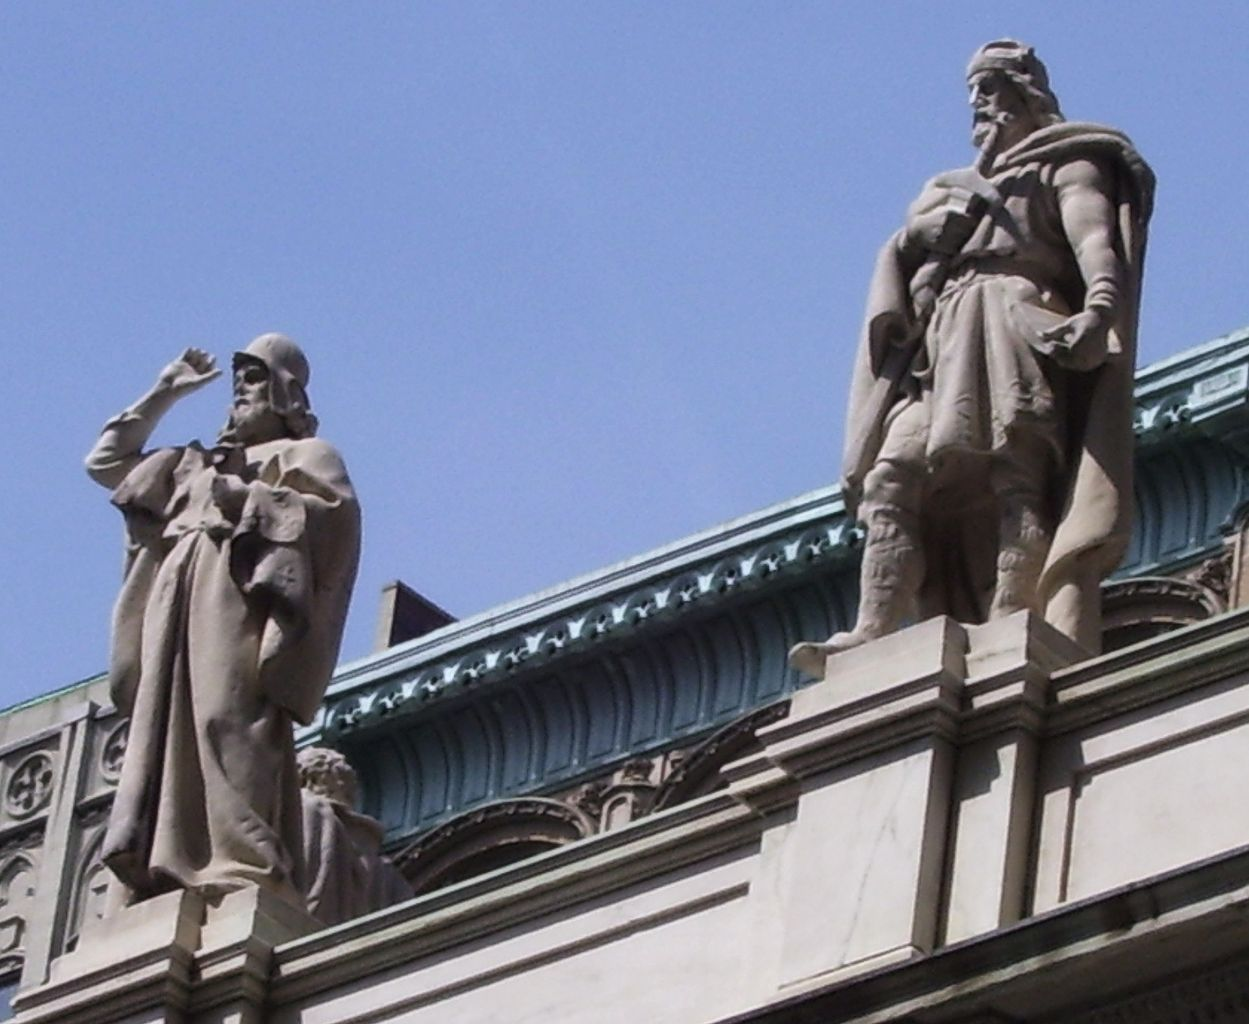 Zoroaster (left) standing over the First Judicial Department of The New York Supreme Court.